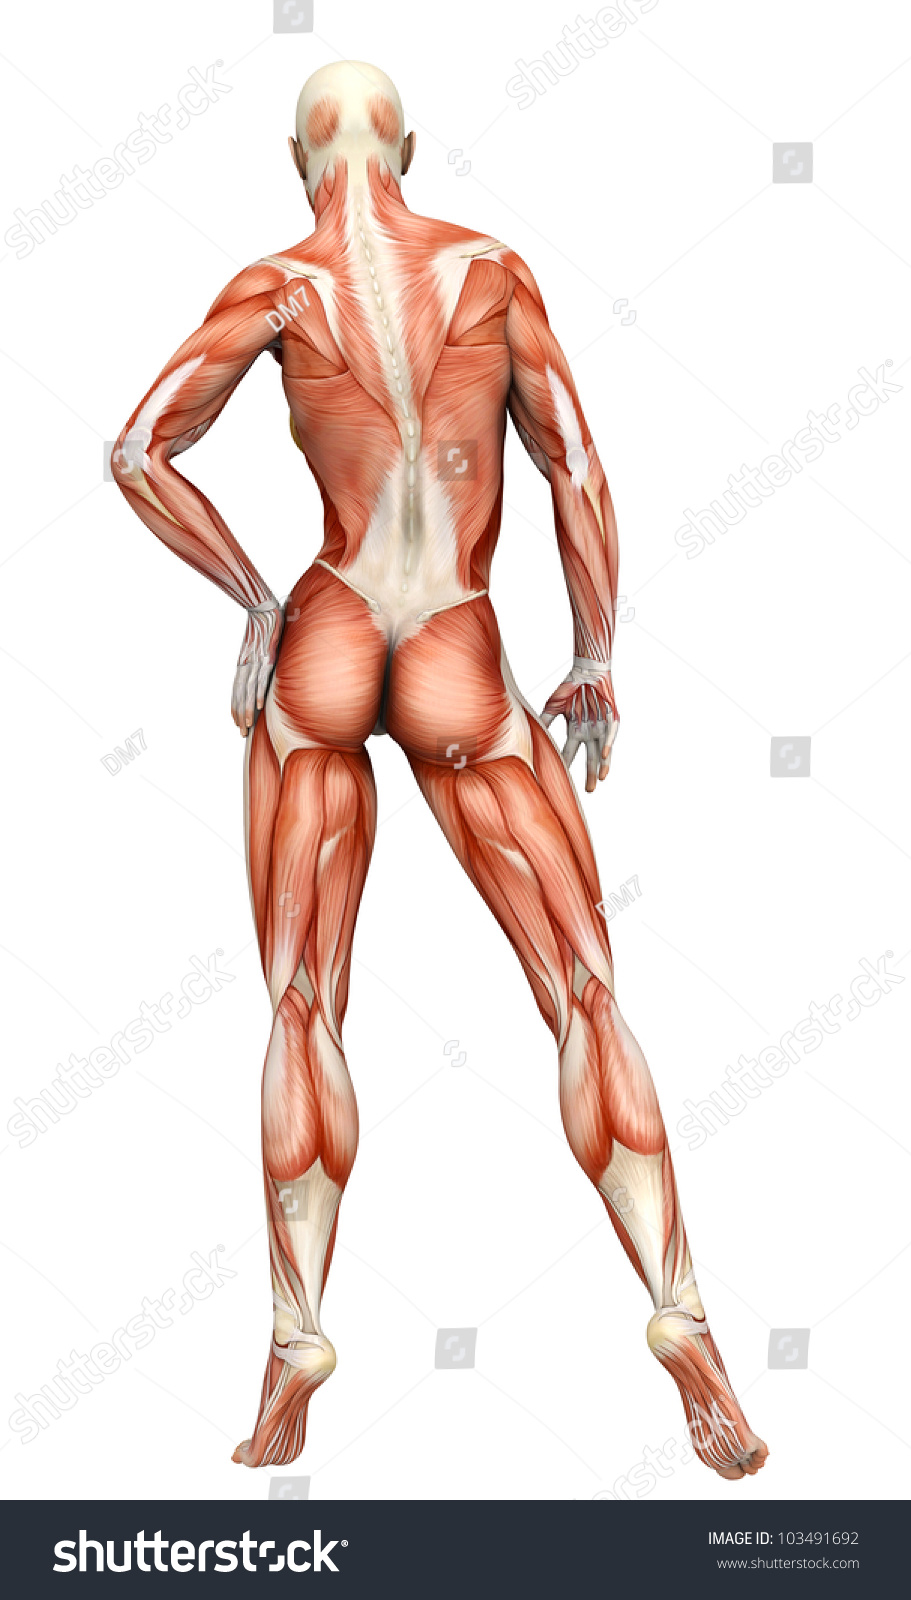 muscle woman back view stock illustration 103491692 - shutterstock, Muscles